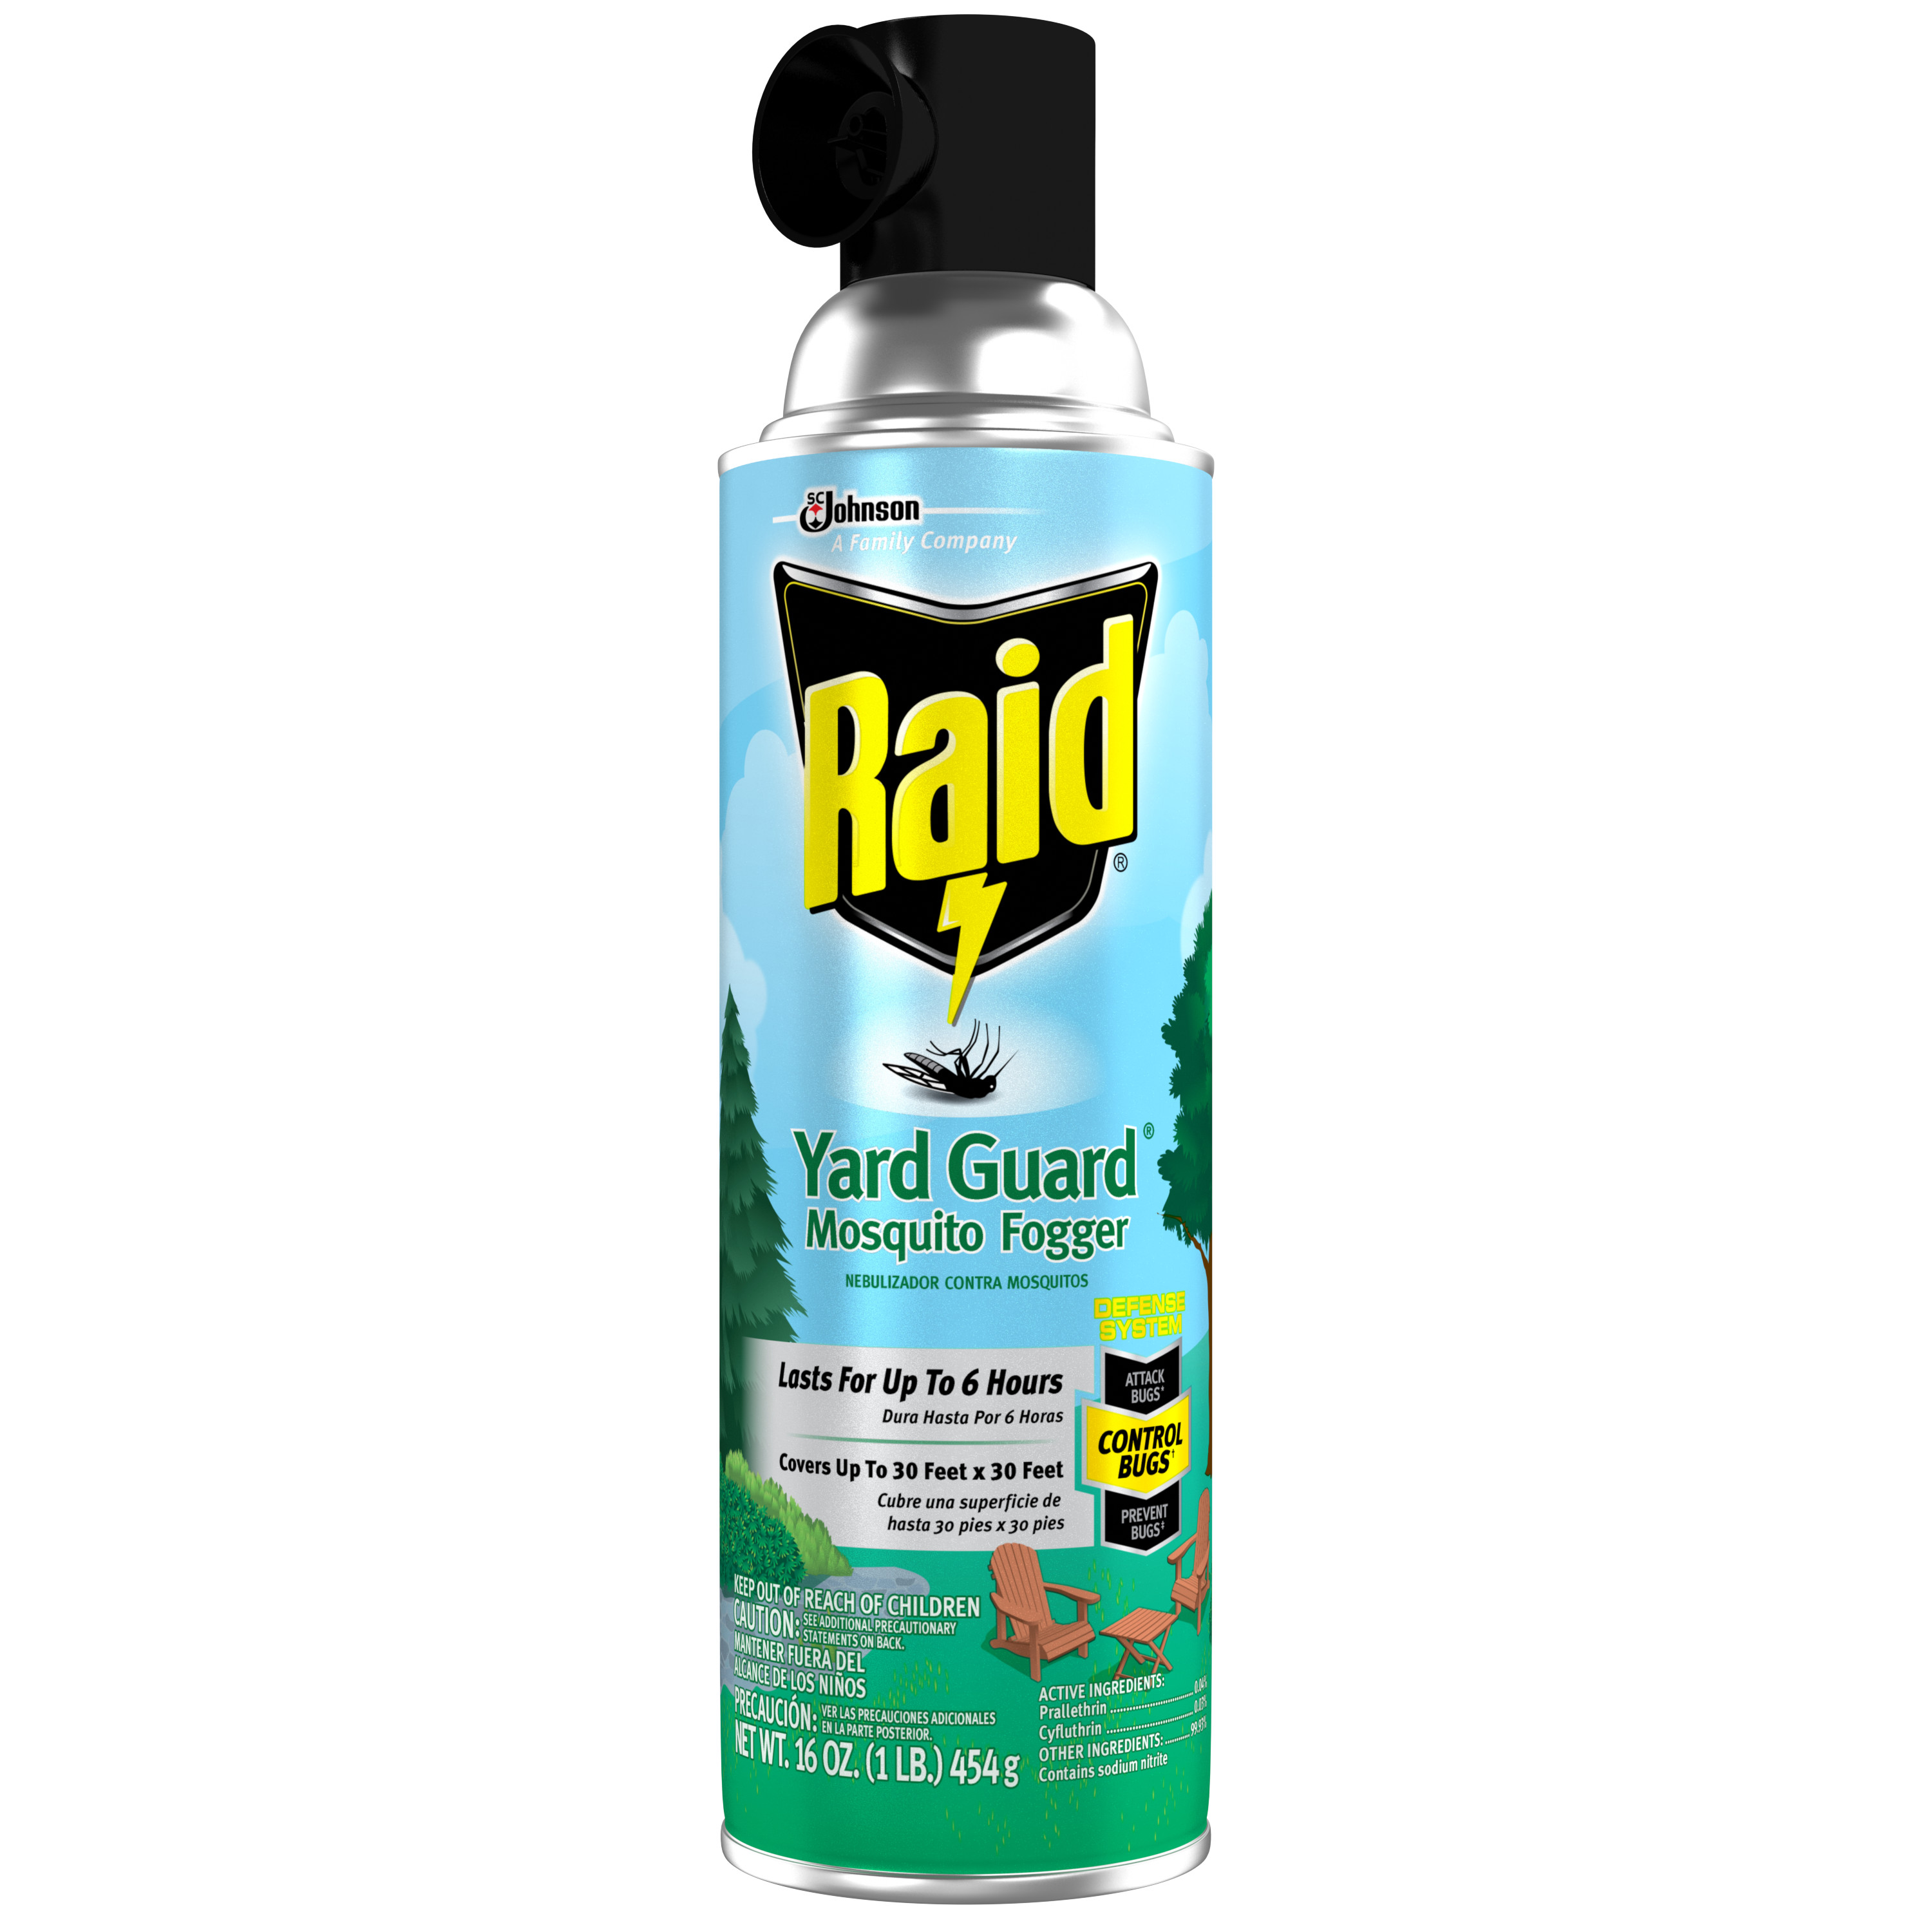 Raid Yard Guard Mosquito Fogger 16 Ounces